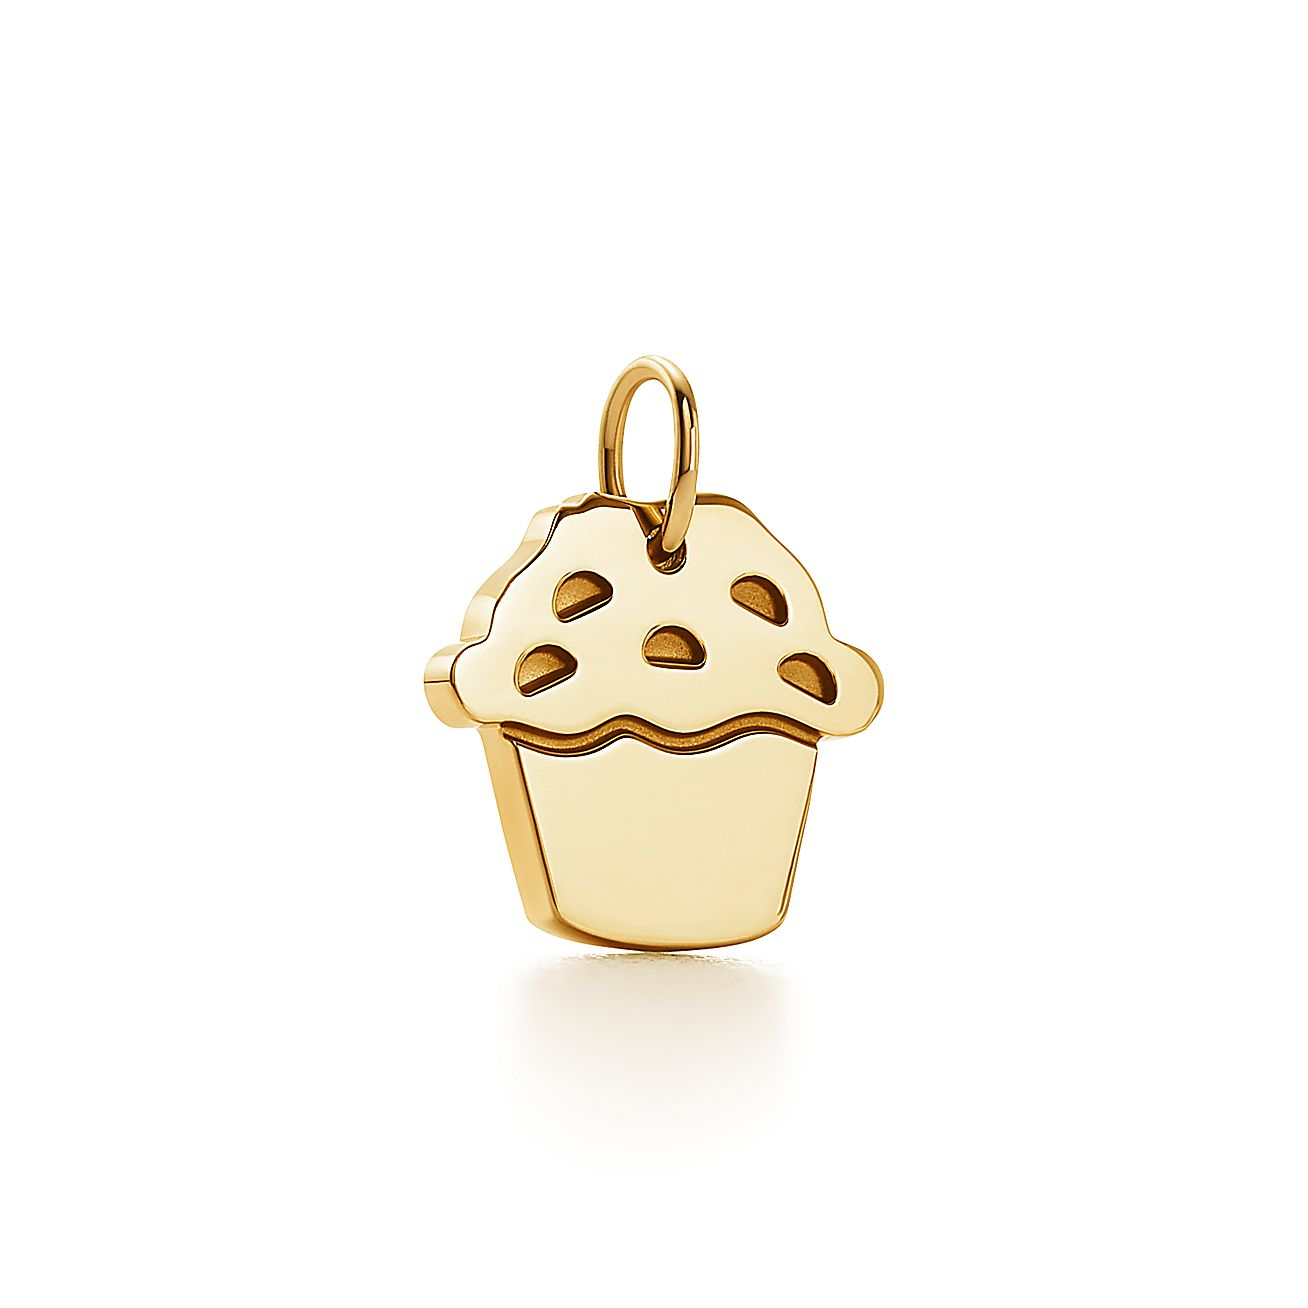 Tiffany Charms love muffin charm in 18k gold. | Tiffany & Co.